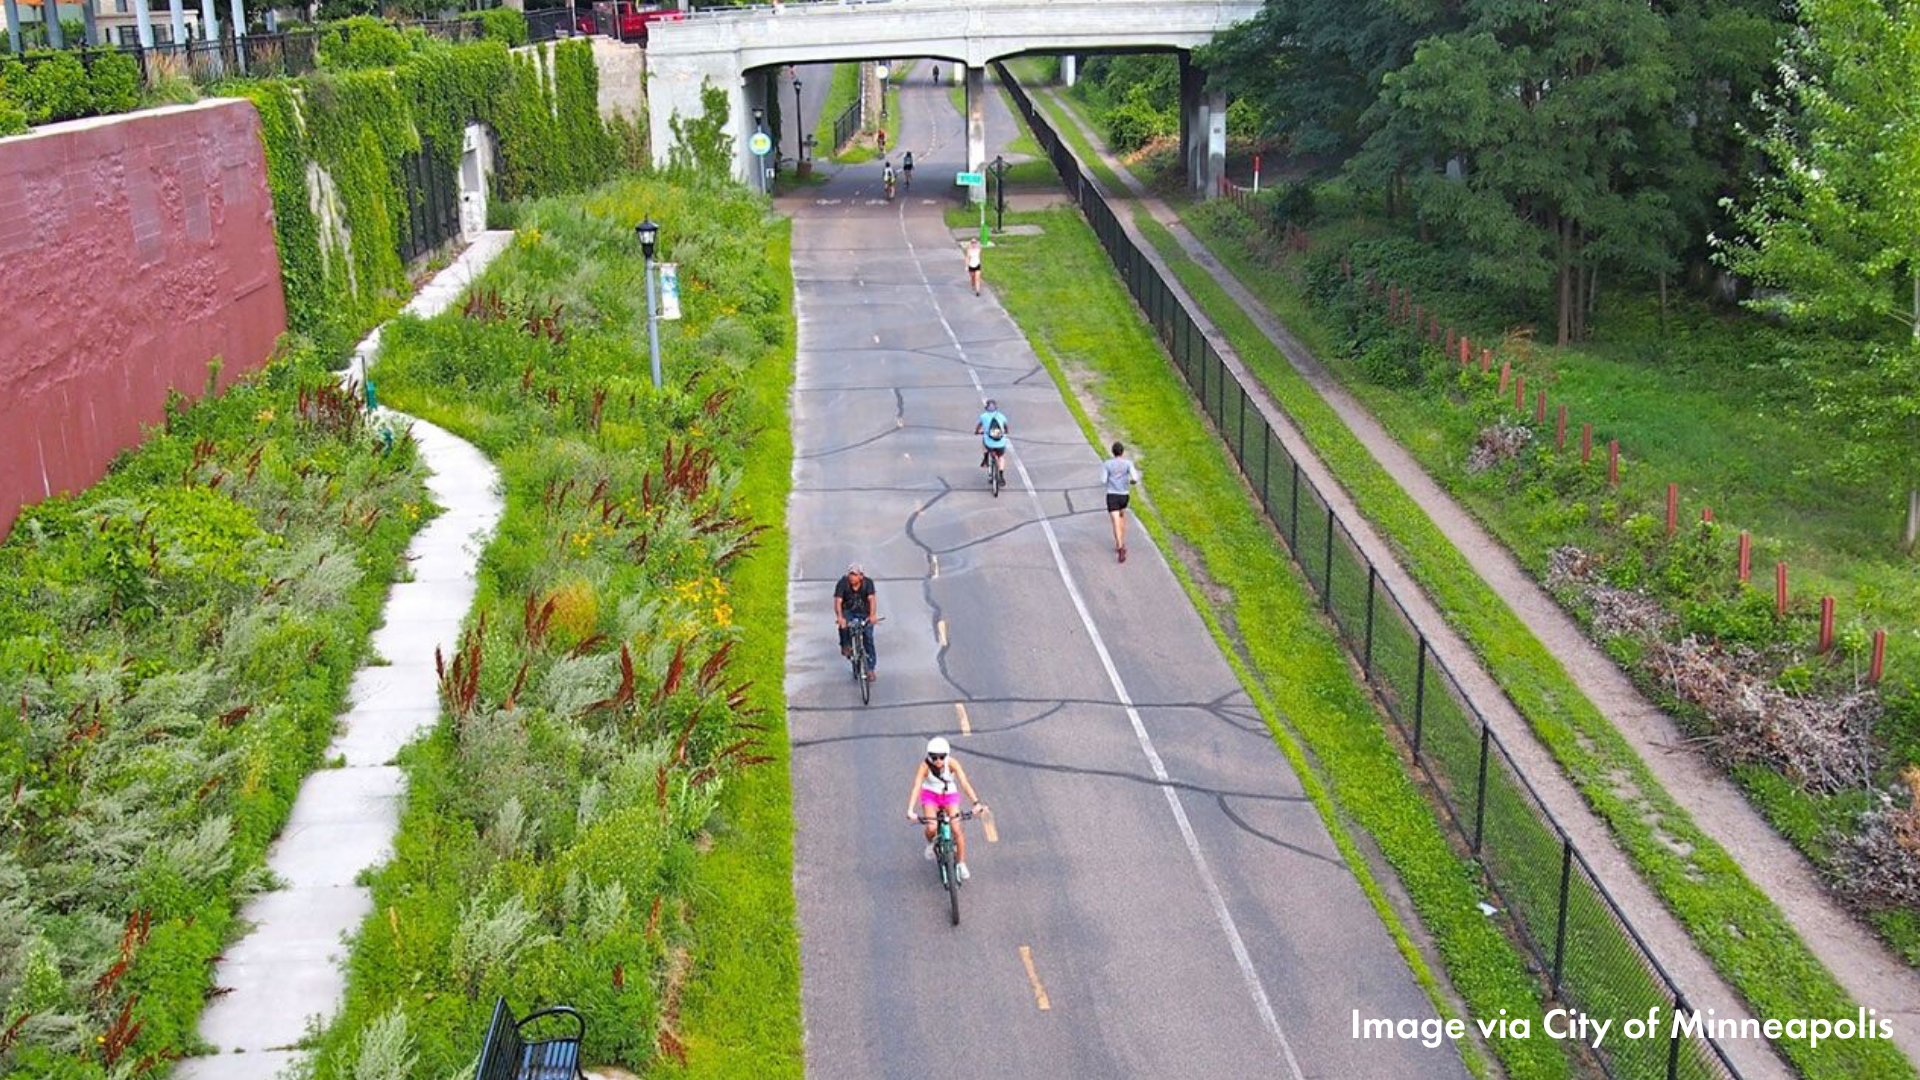 People biking on the midtown greenway as seen from above